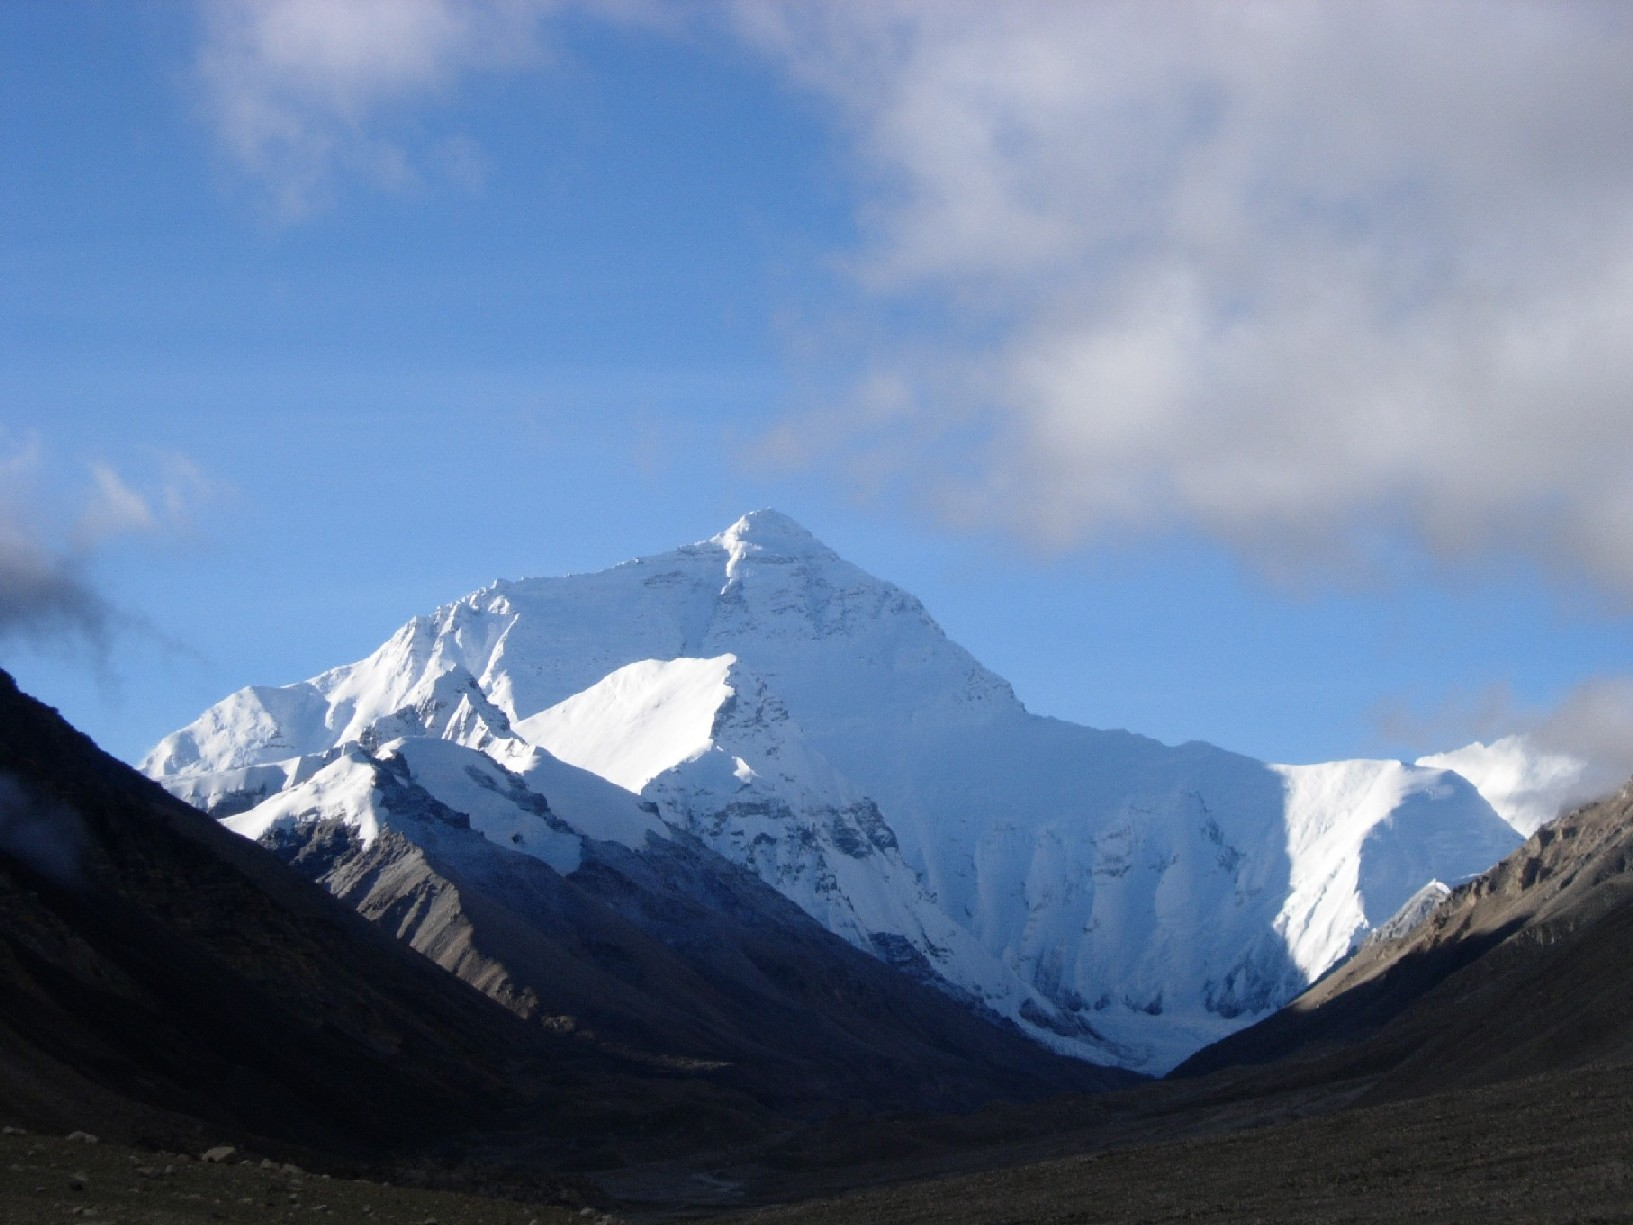 照片:Mt. Everest